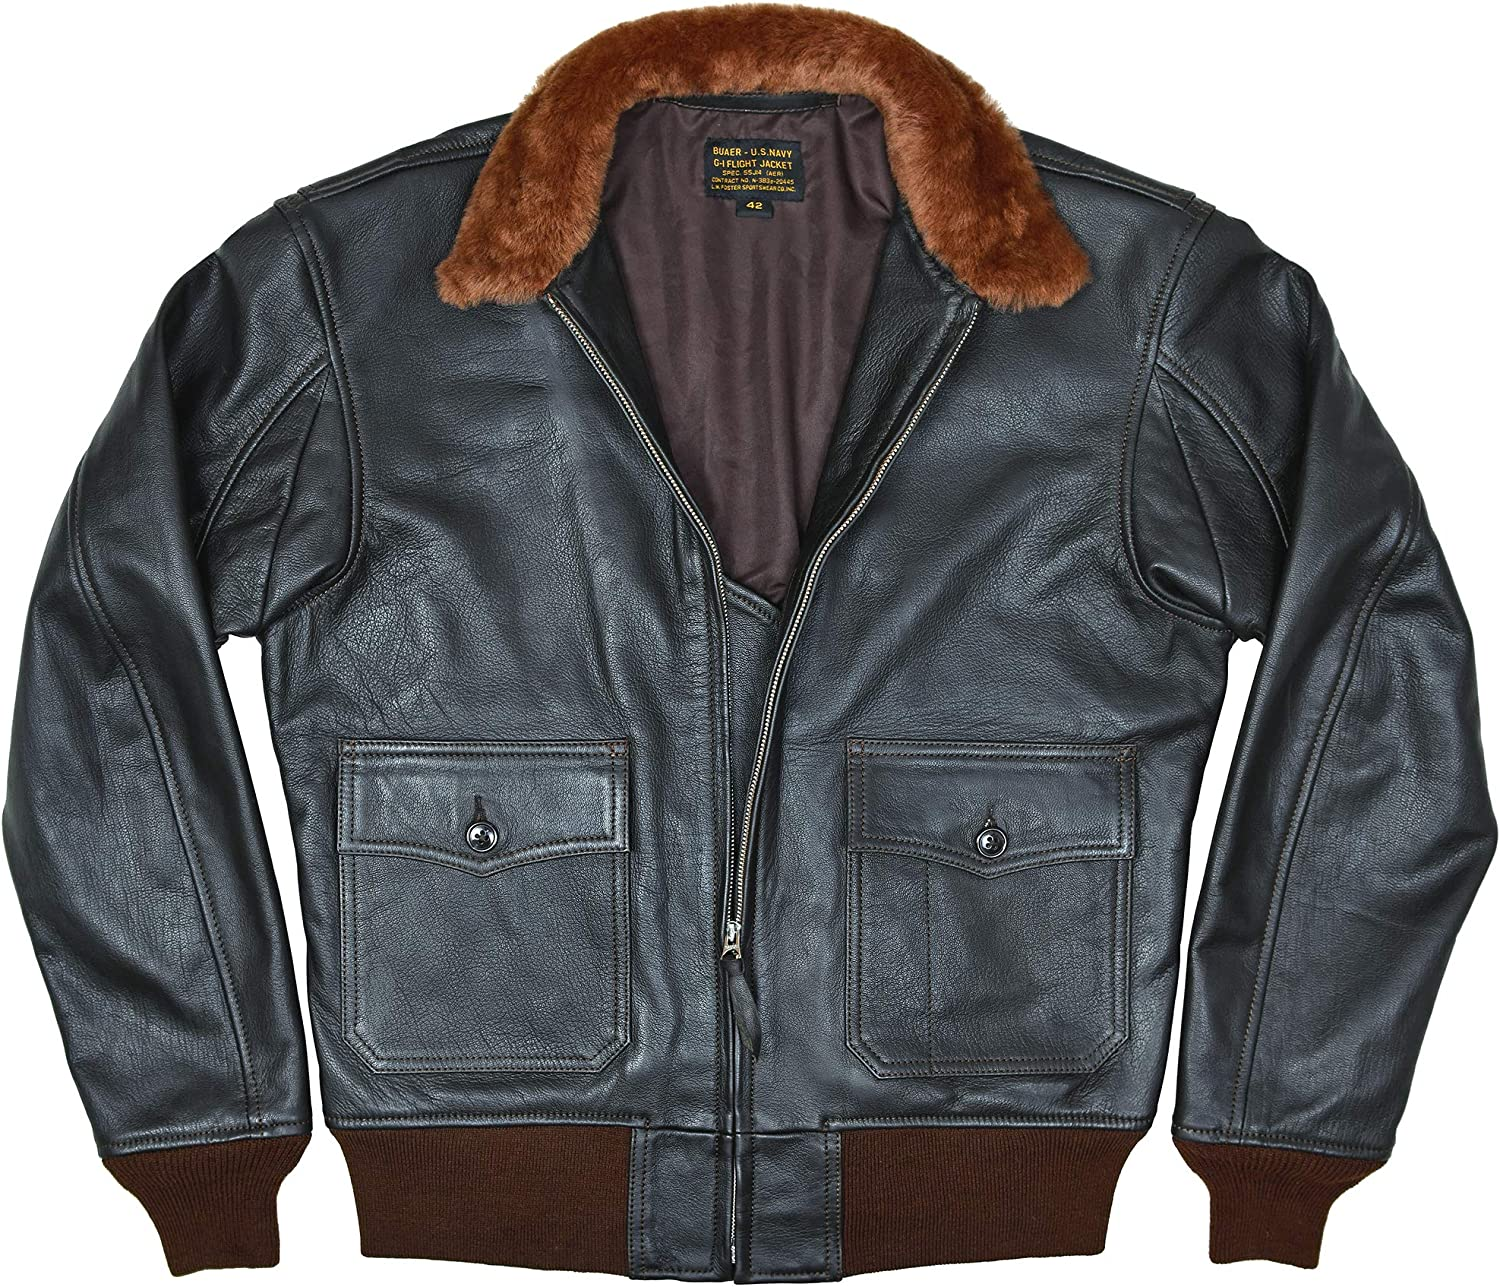 Cash special Max 87% OFF price FIVESTAR LEATHER Men's G-1 Buaer 55j14 Le US Naval Military Spec